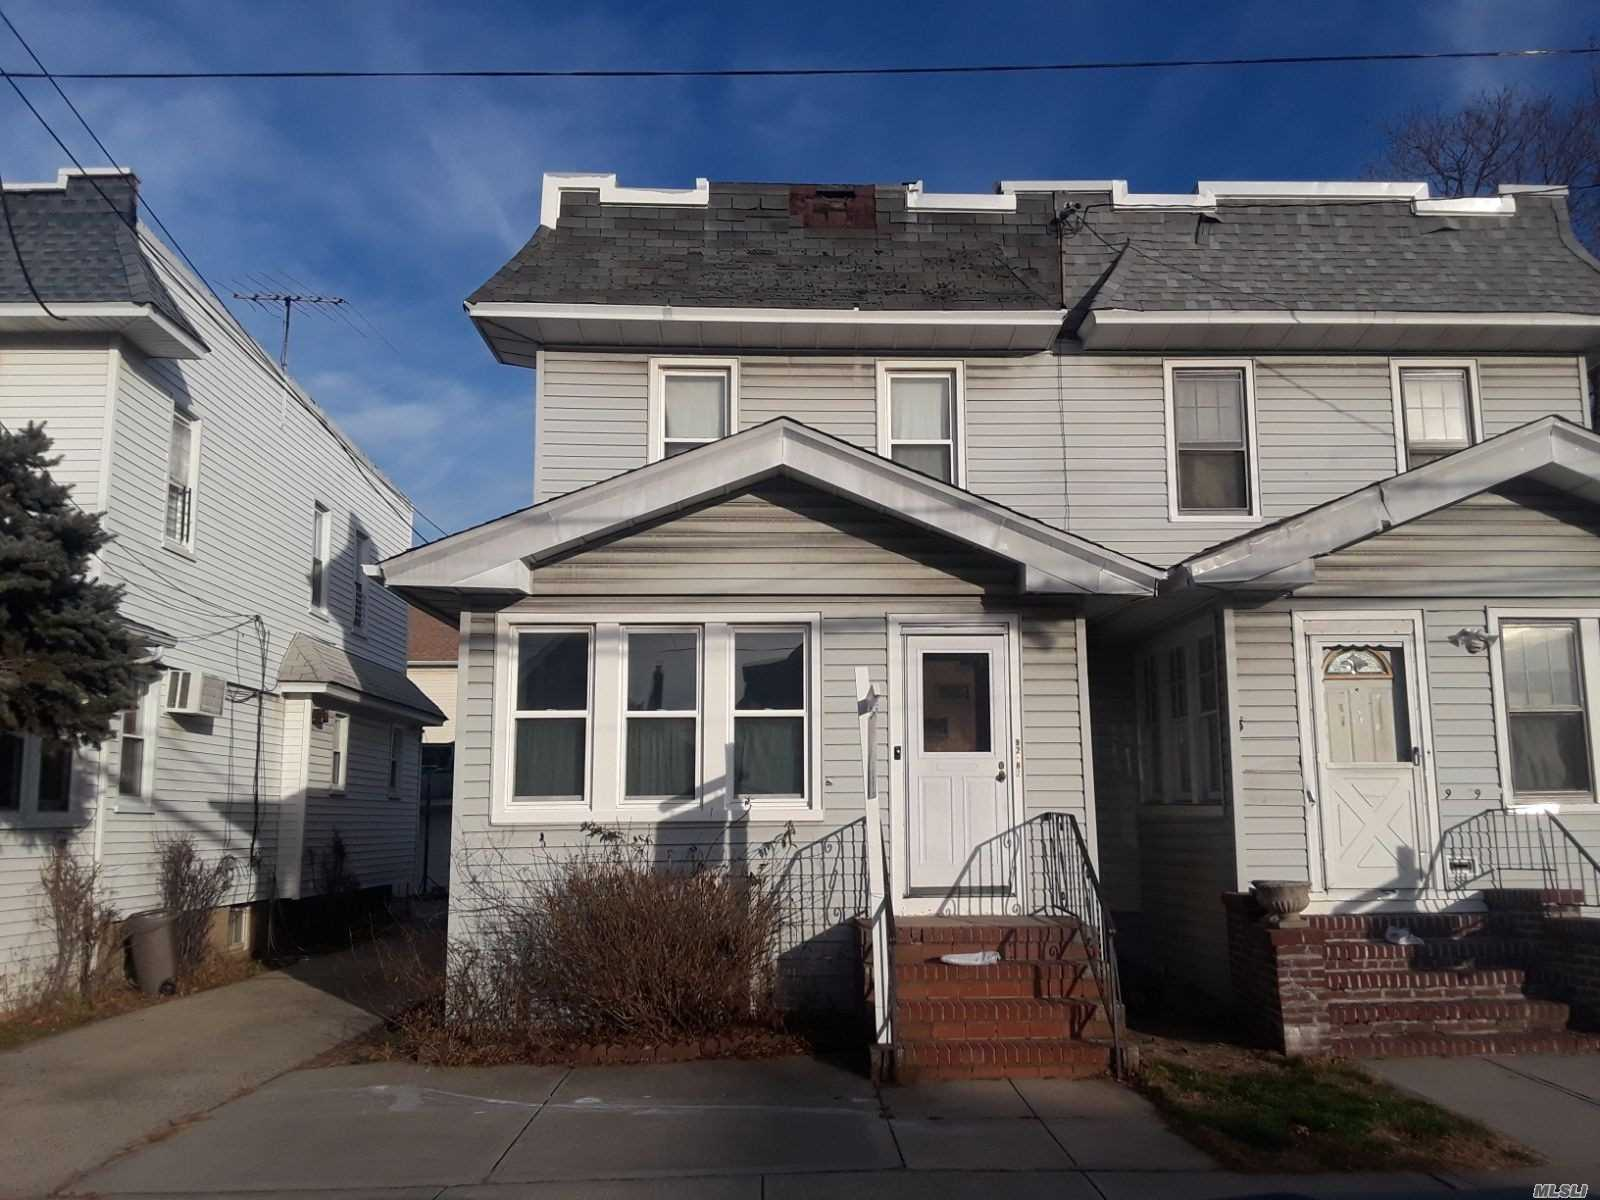 Amazing Opportunity To Own 2 Homes Next To Each Other As Next Door Also For Sale; Amazing Price; Because House Needs Tlc; Renovate It Your Way With 203K Loan; 3 Br 2 Baths;